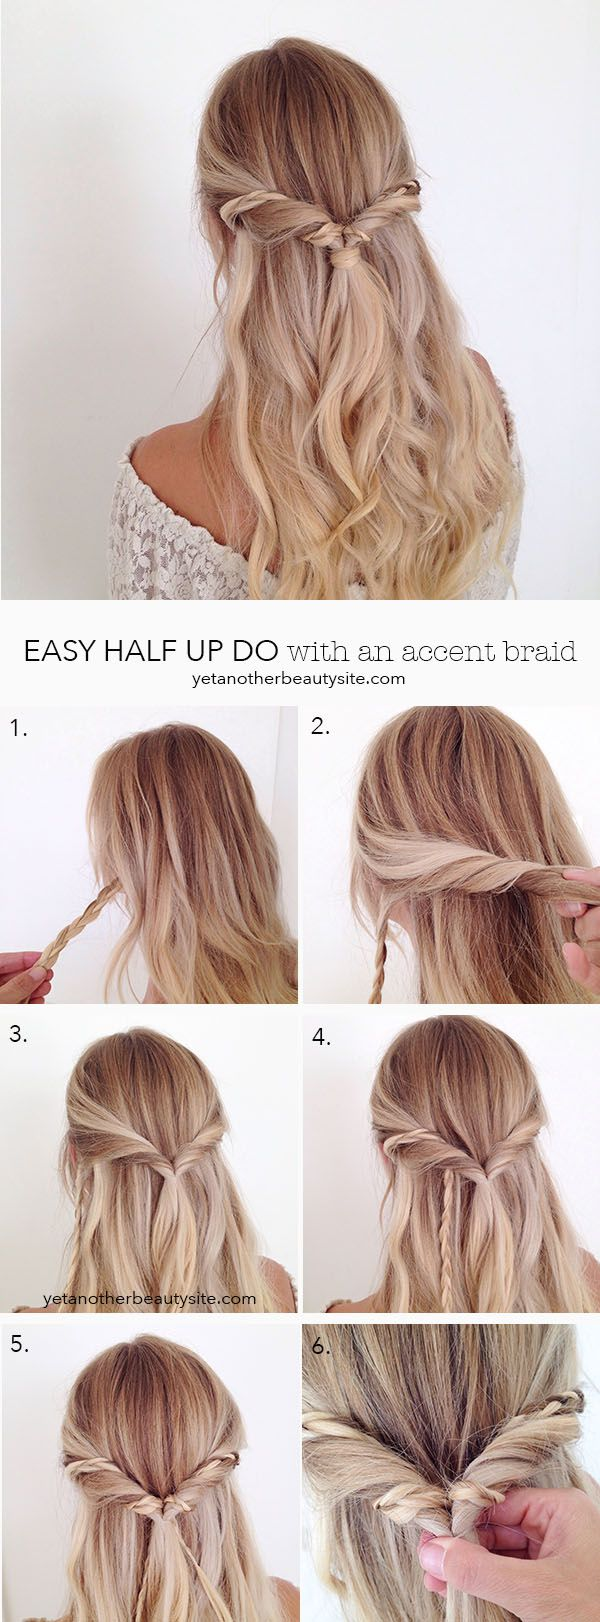 The 25 Best Easy Hairstyles Ideas On Pinterest